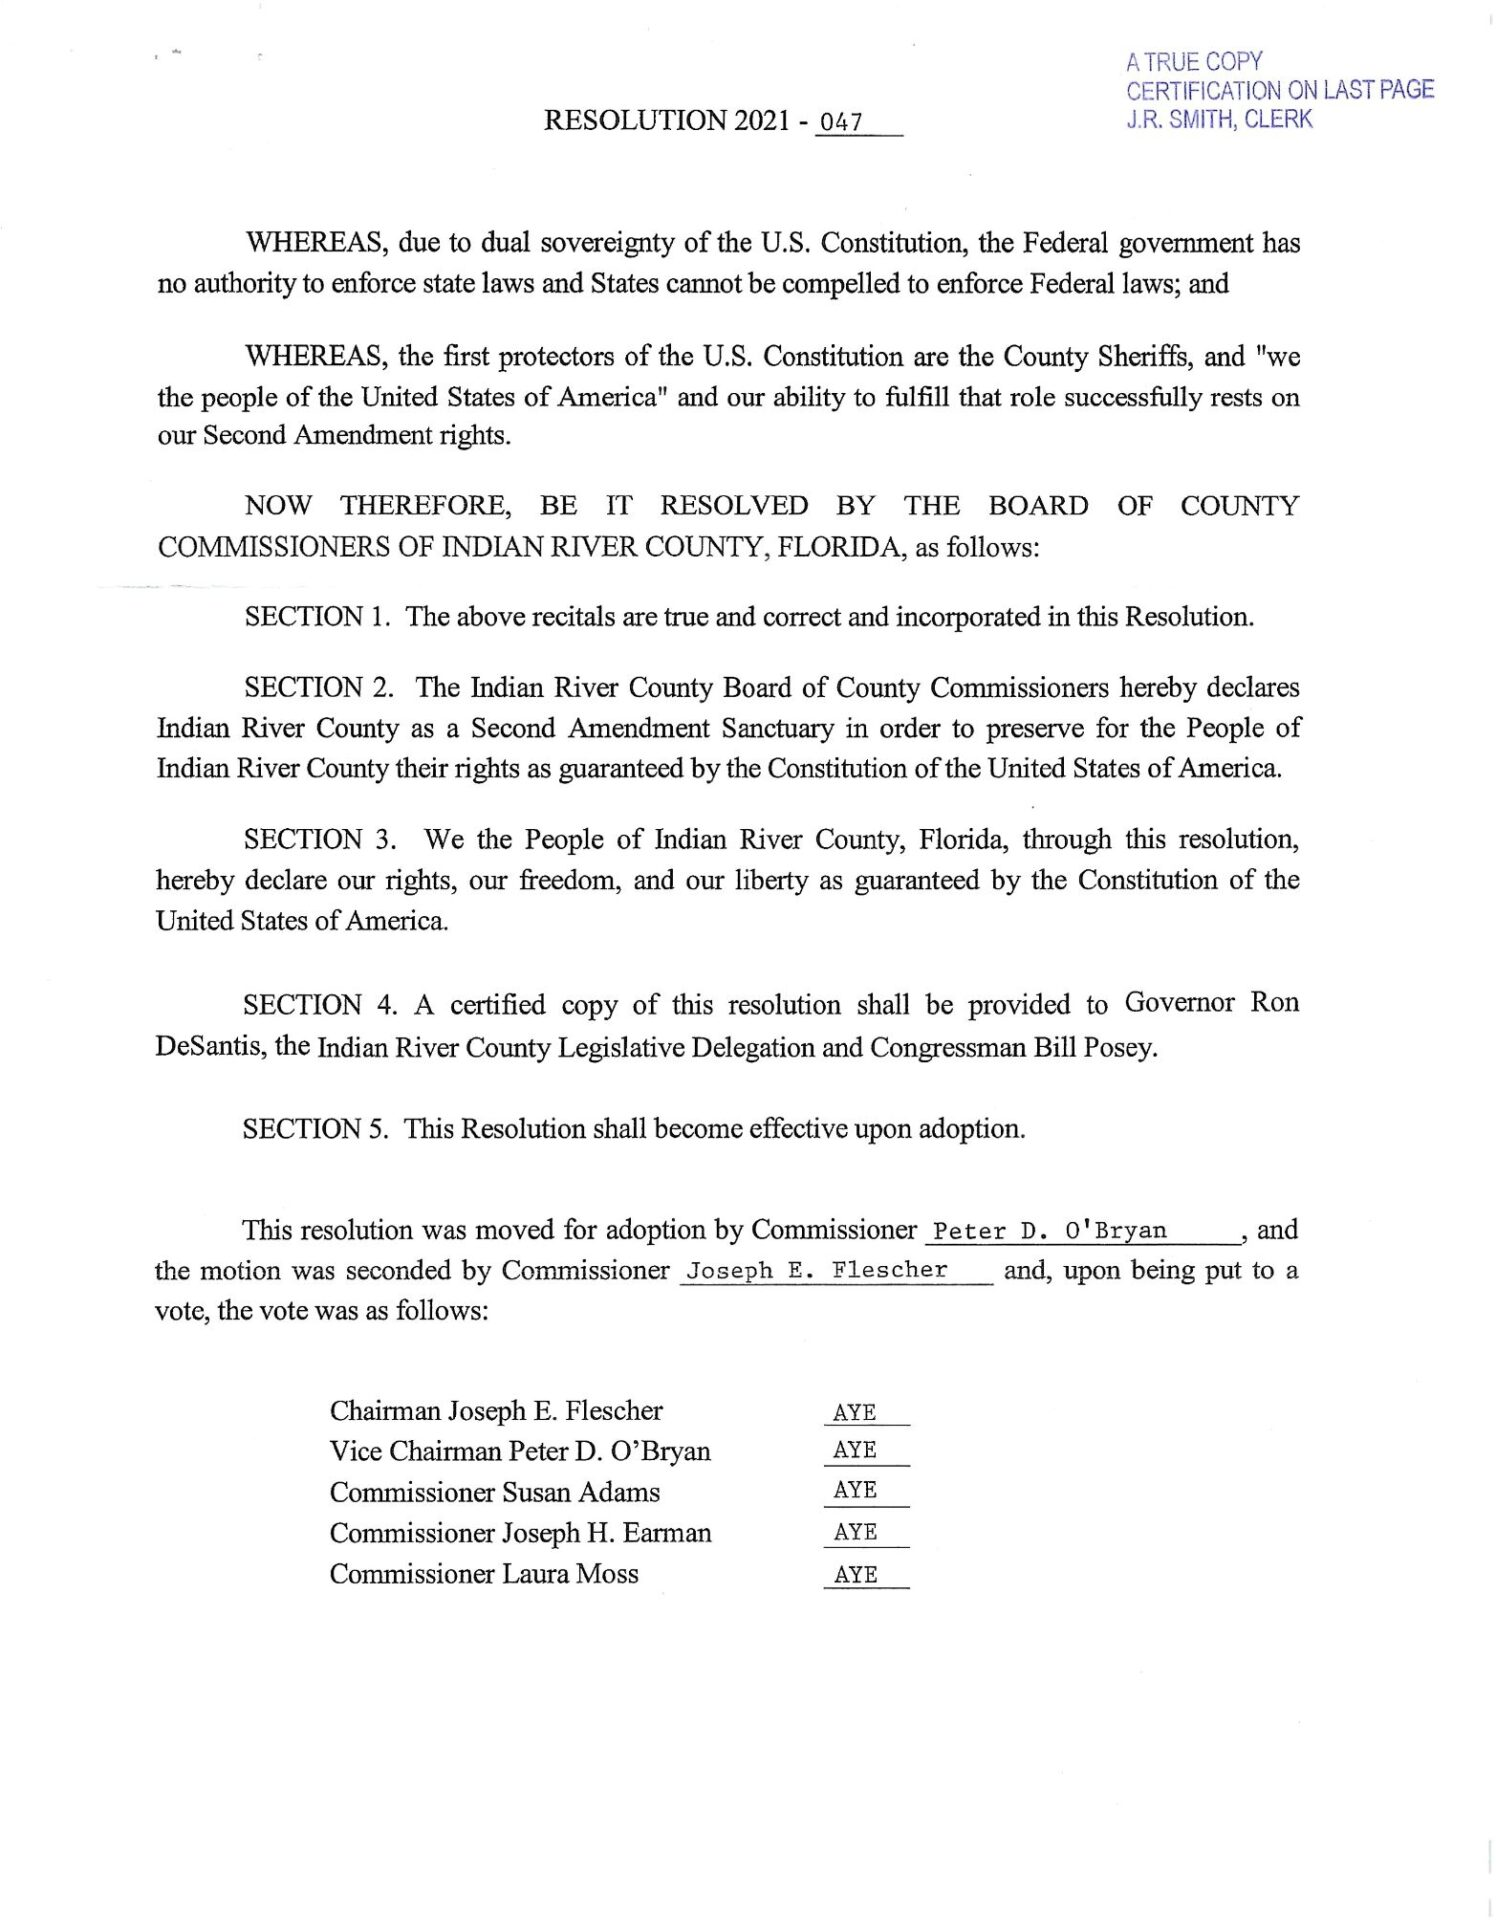 Indian River County Florida - Resolution 2021-047 Page 2